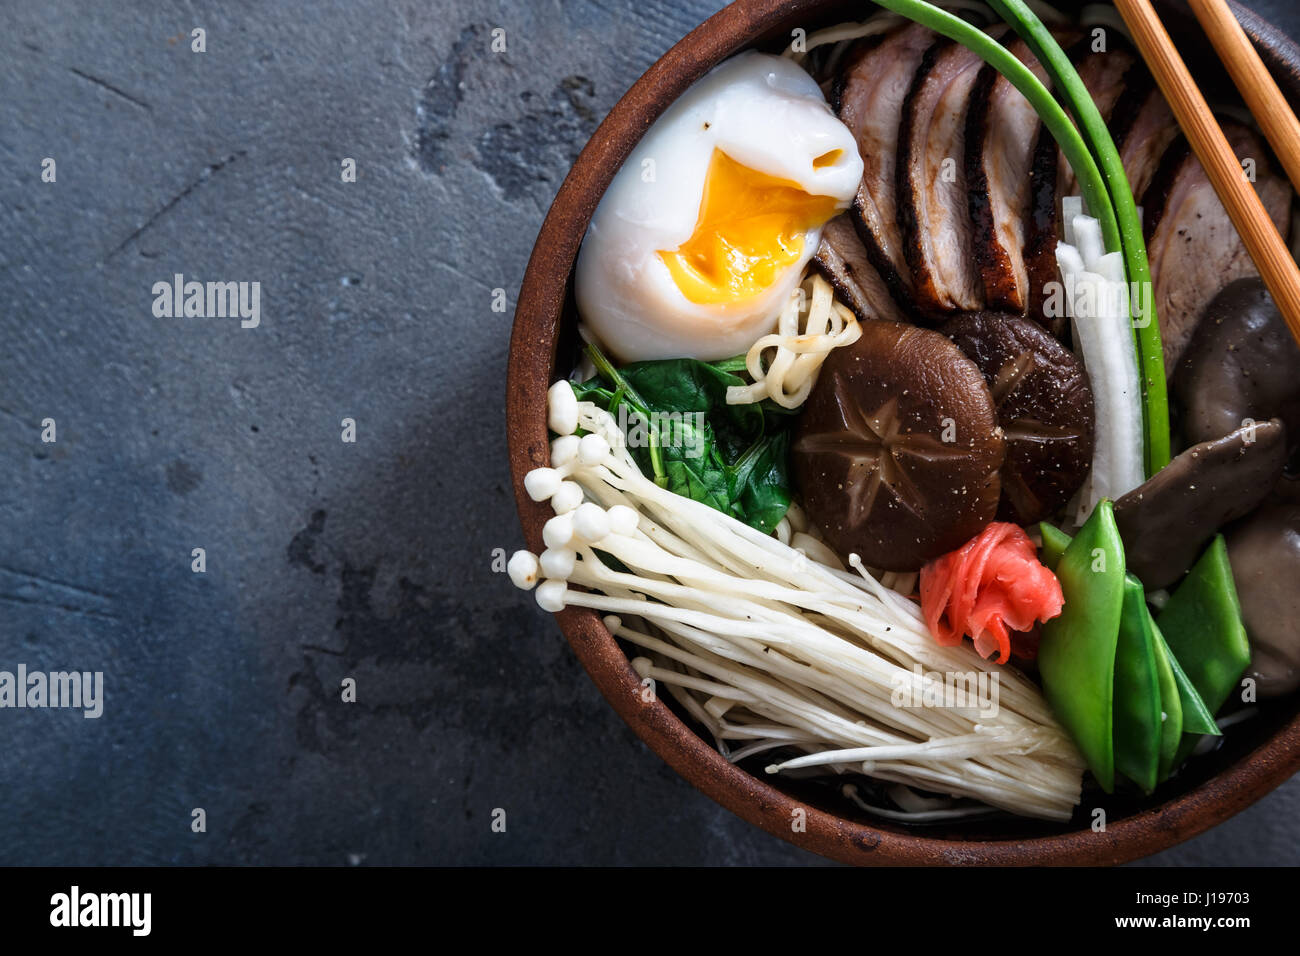 Duck noodles with egg and mushrooms in bowl on dark black stone texture background - Stock Image